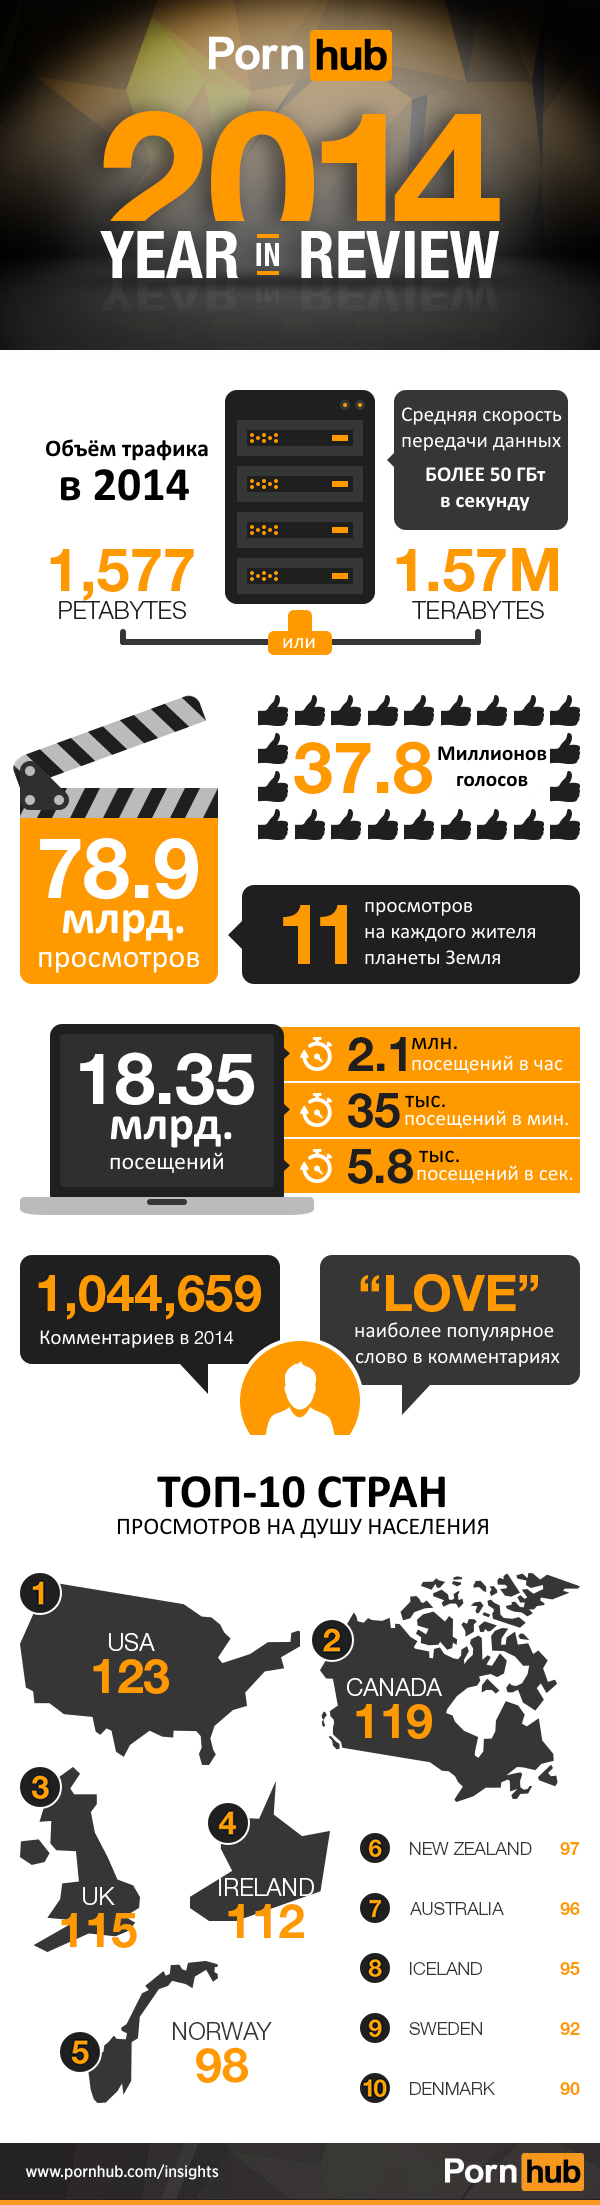 2-pornhub-2014-year-in-review-stats_translated